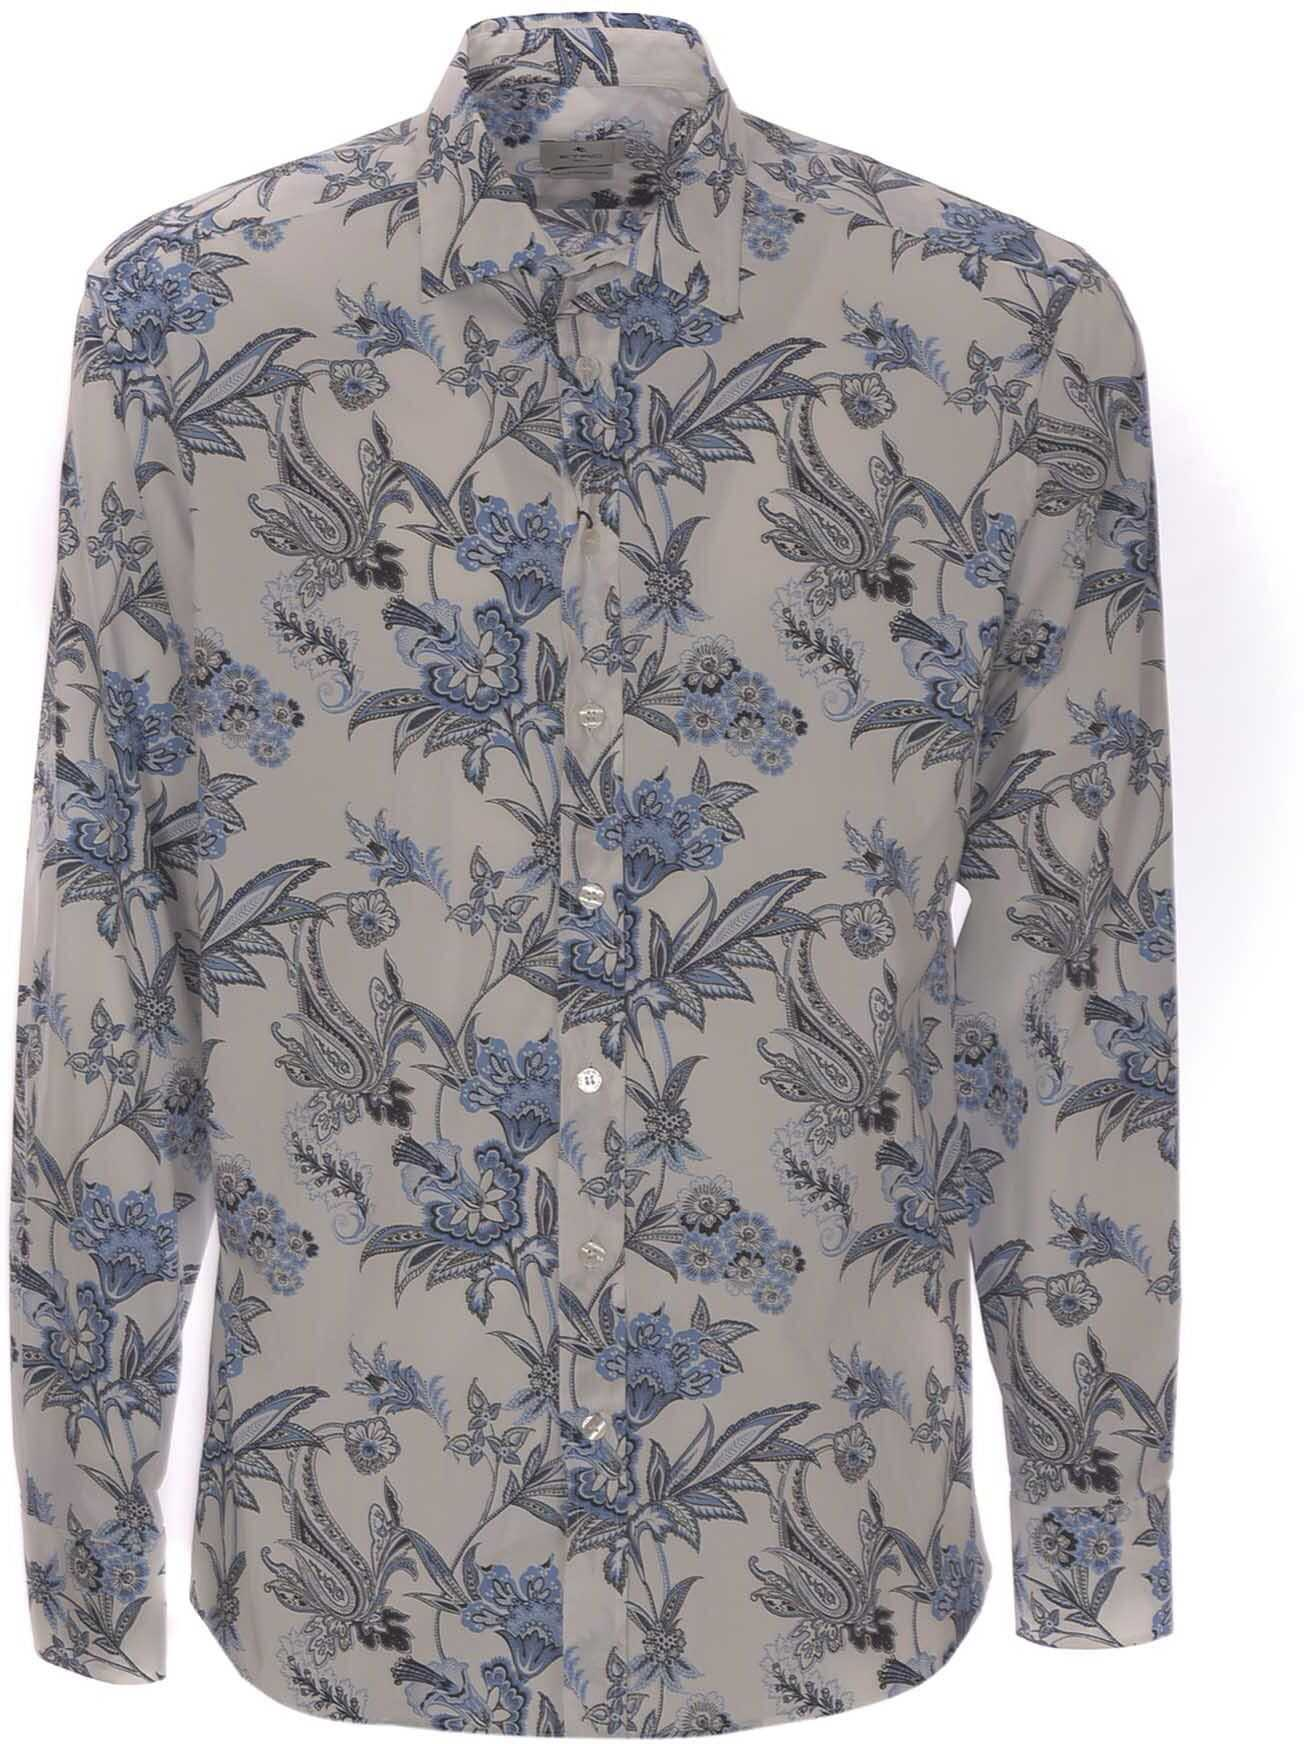 ETRO Floral Shirt In White And Light Blue Light Blue imagine